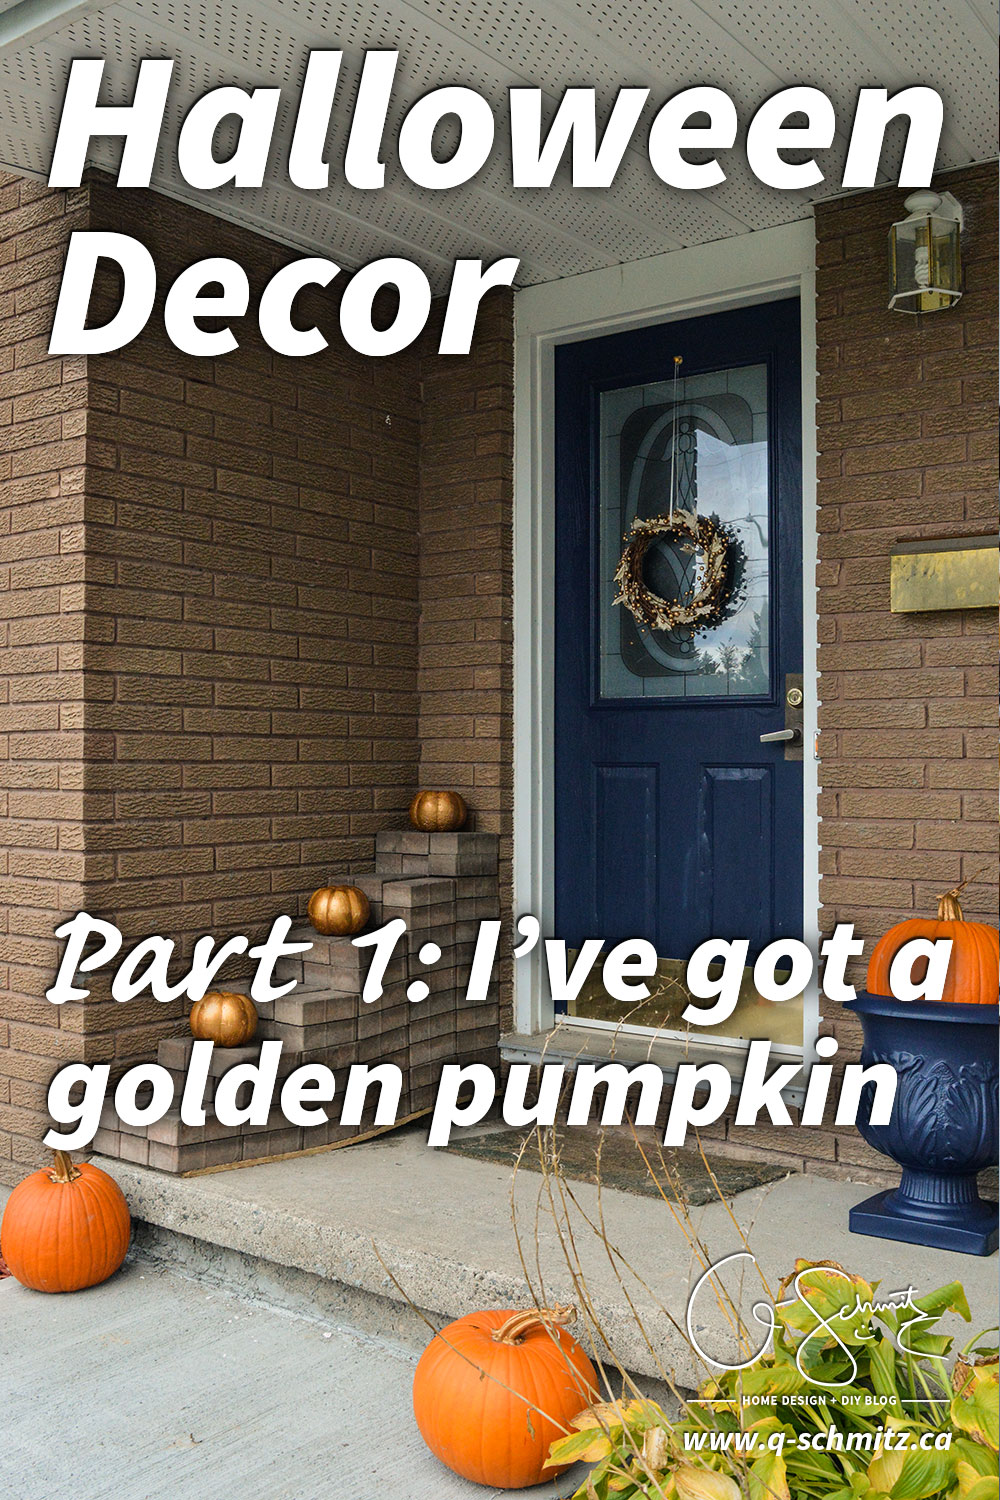 I've got a golden pumpkin! Part 1 is all about picking an outdoor Halloween décor theme and exploring pumpkin options. Part 2 will be coming soon :)